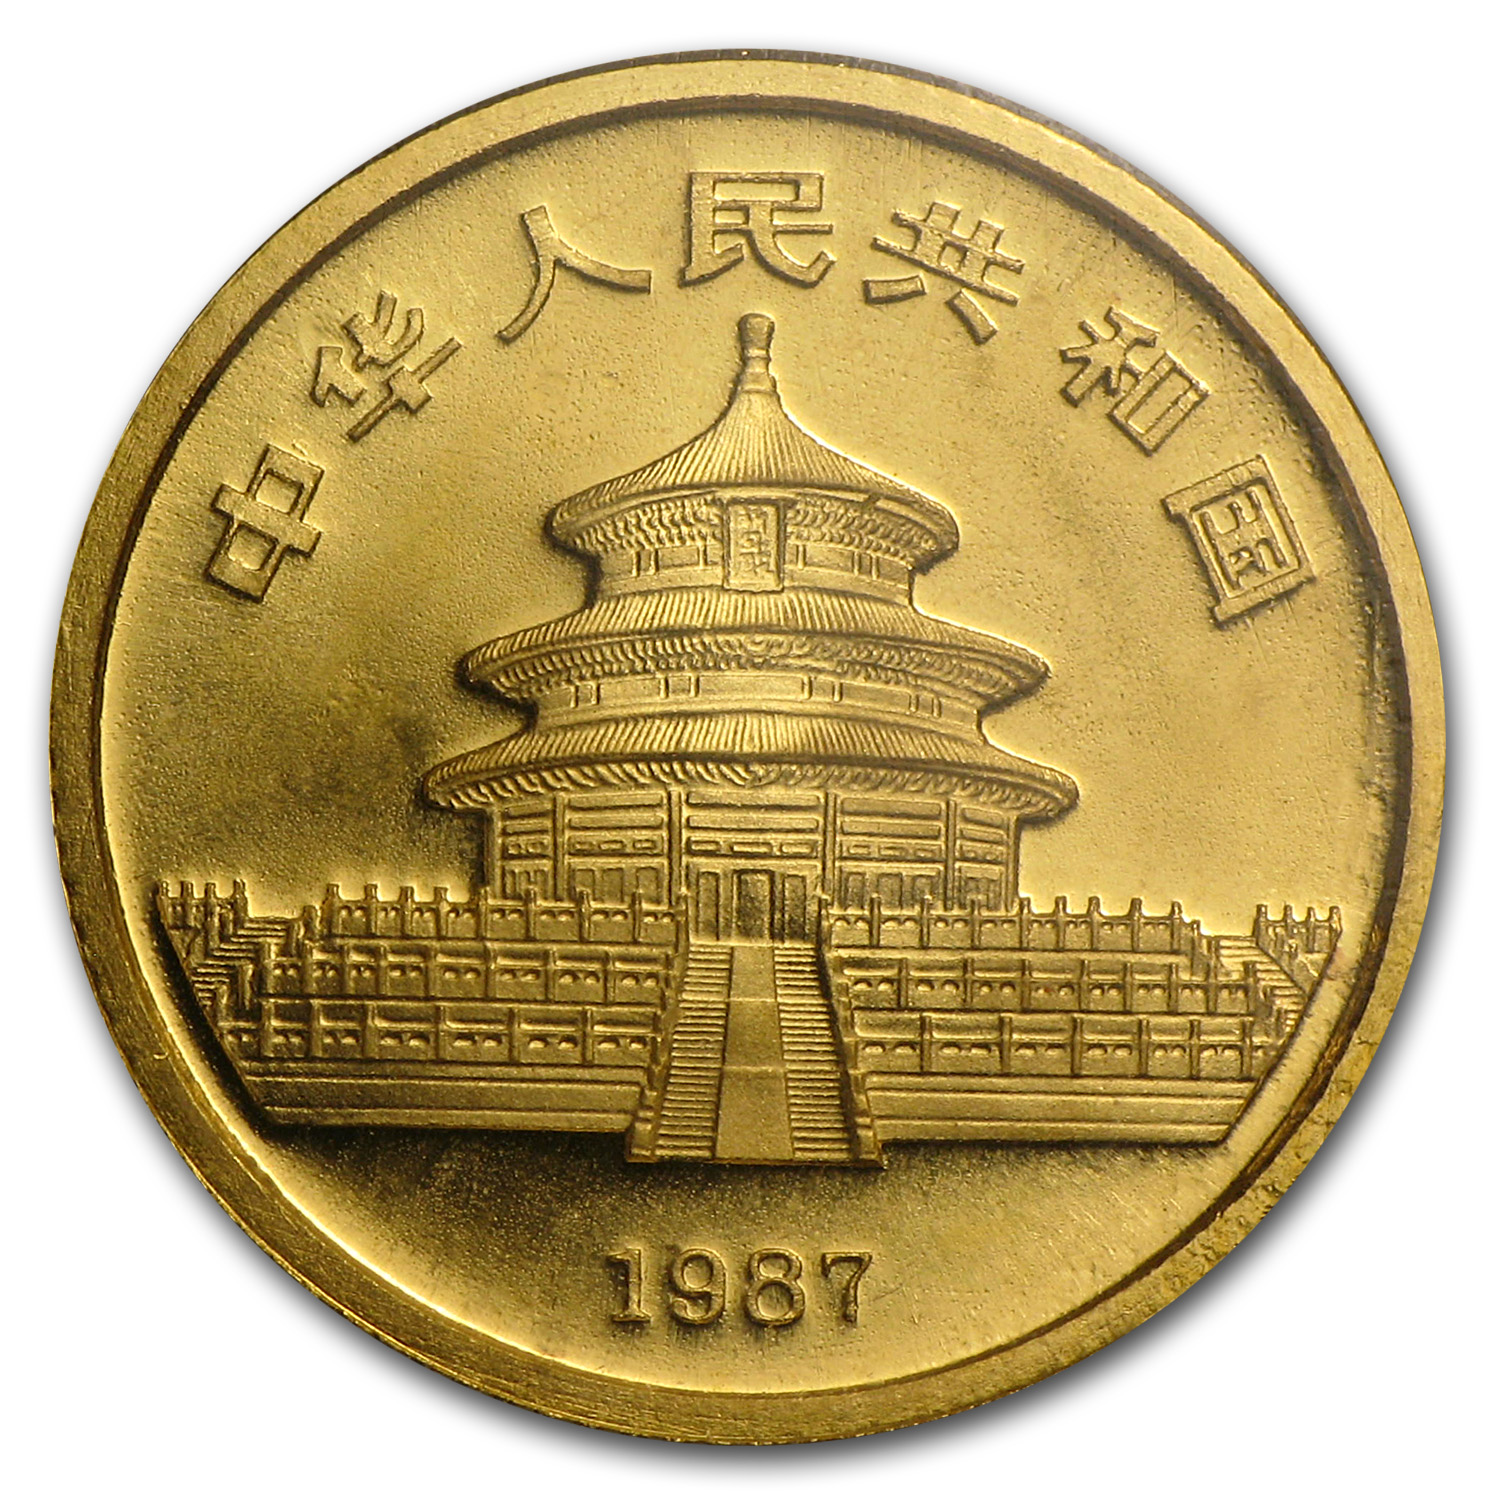 1987-S China 1/10 oz Gold Panda BU (Sealed)